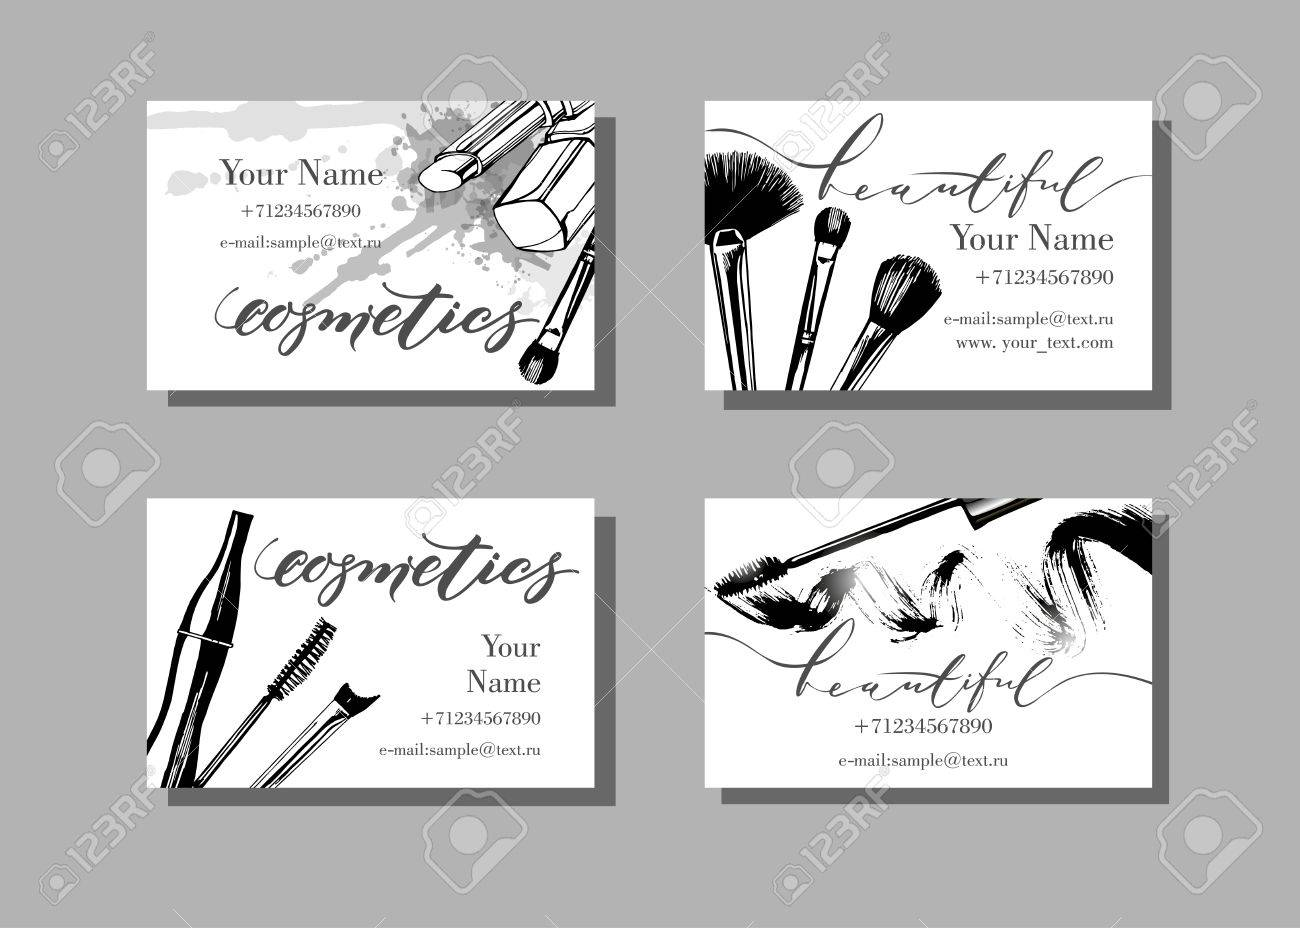 Makeup Artist Business Card Vector Template With Makeup Items - Eyeshadow template